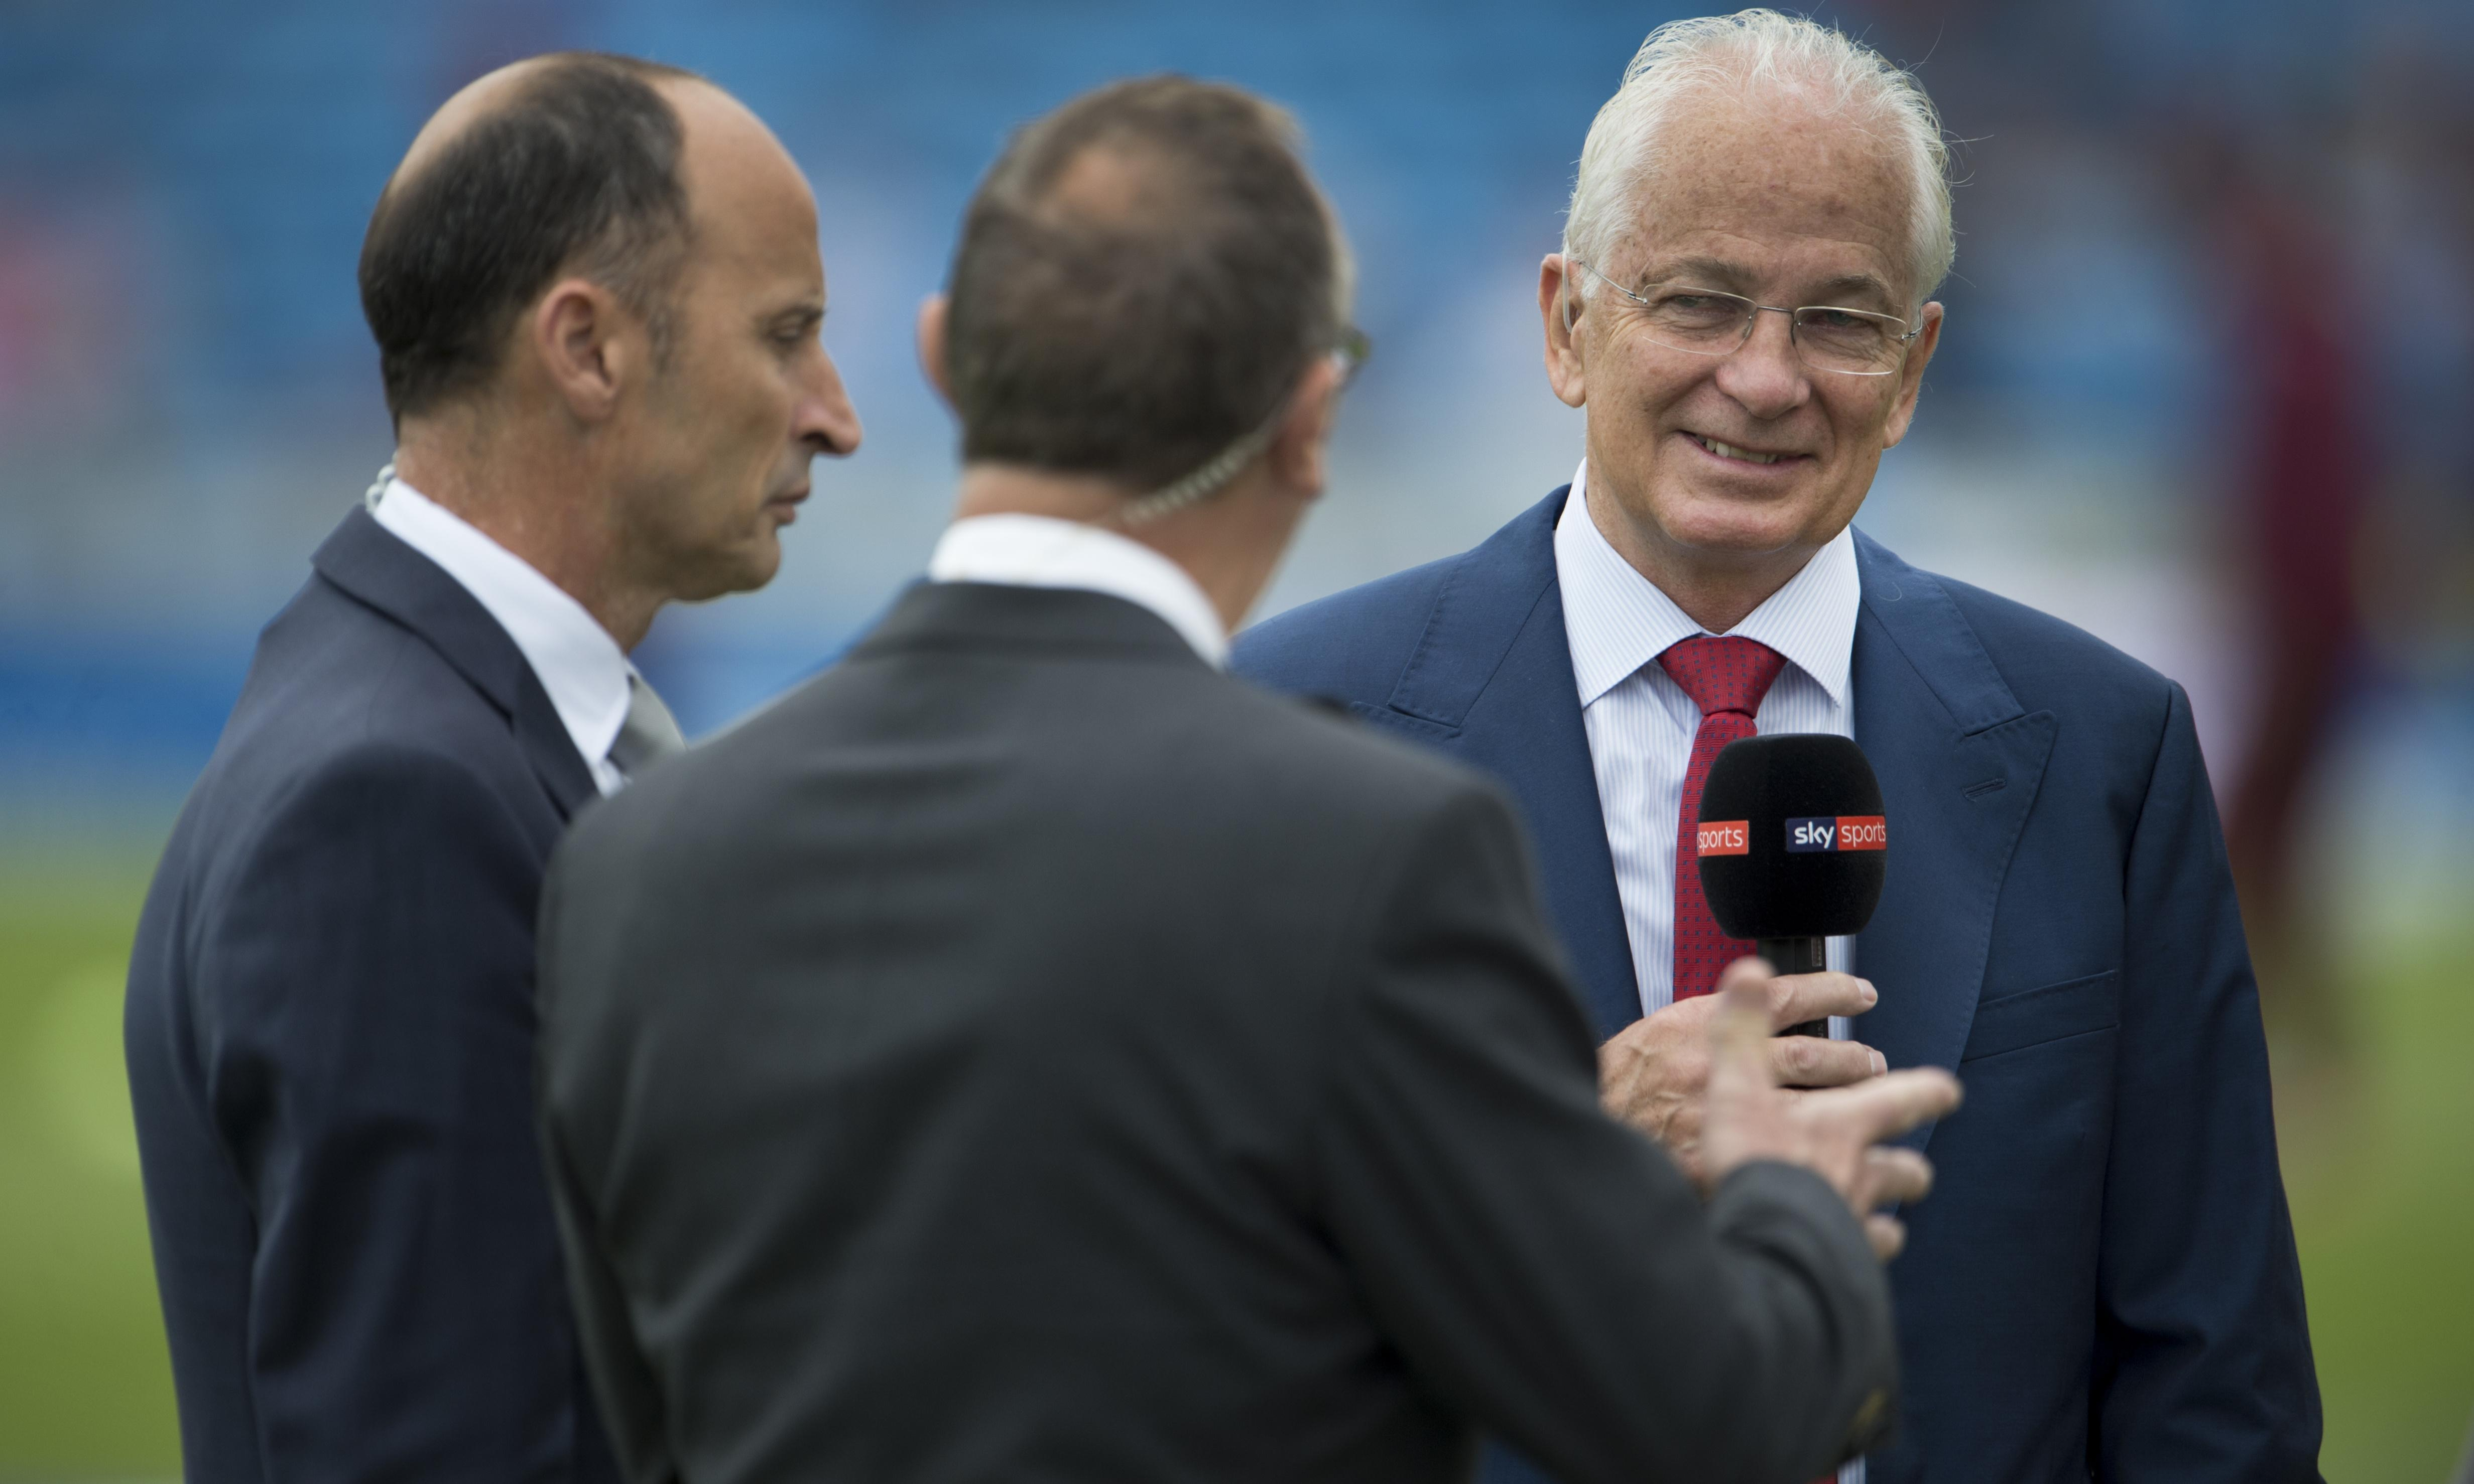 David Gower was always so welcoming to viewers but he now faces long goodbye